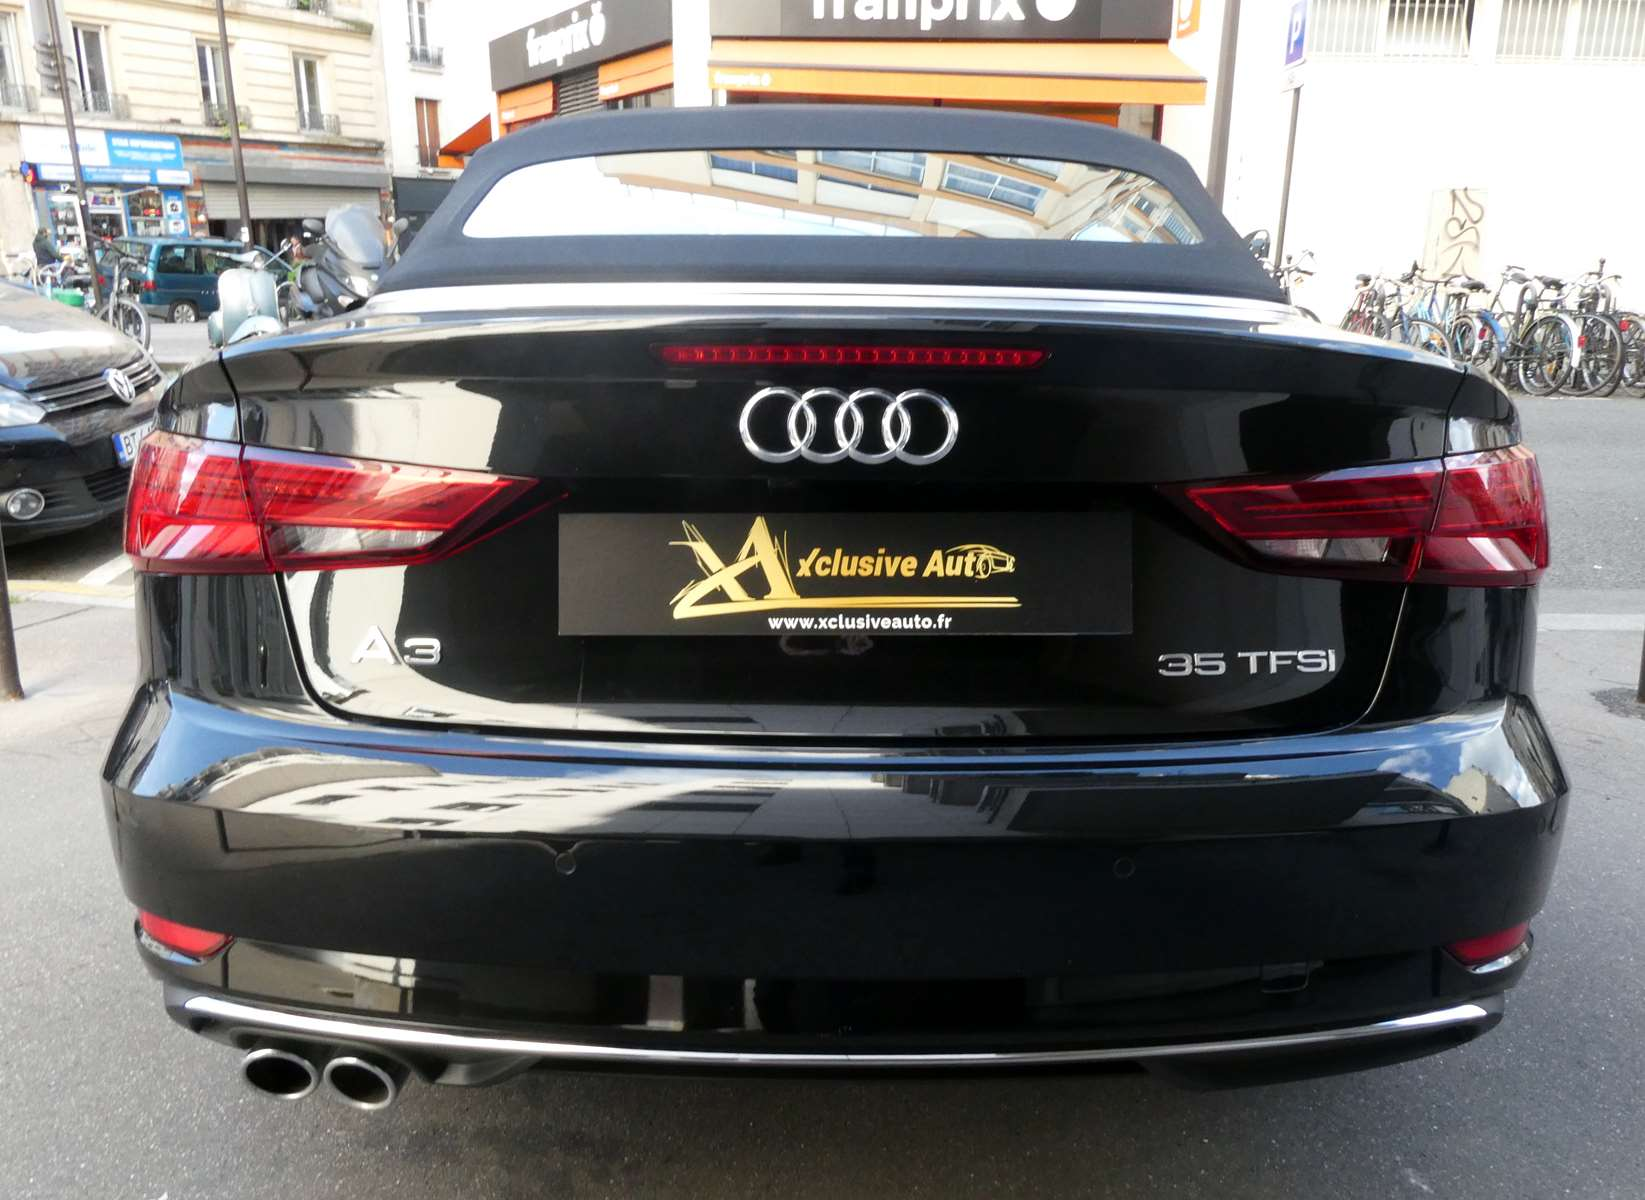 Audi A3 (2) cabriolet 35 TFSI 150 Design luxe S tronic 7 3